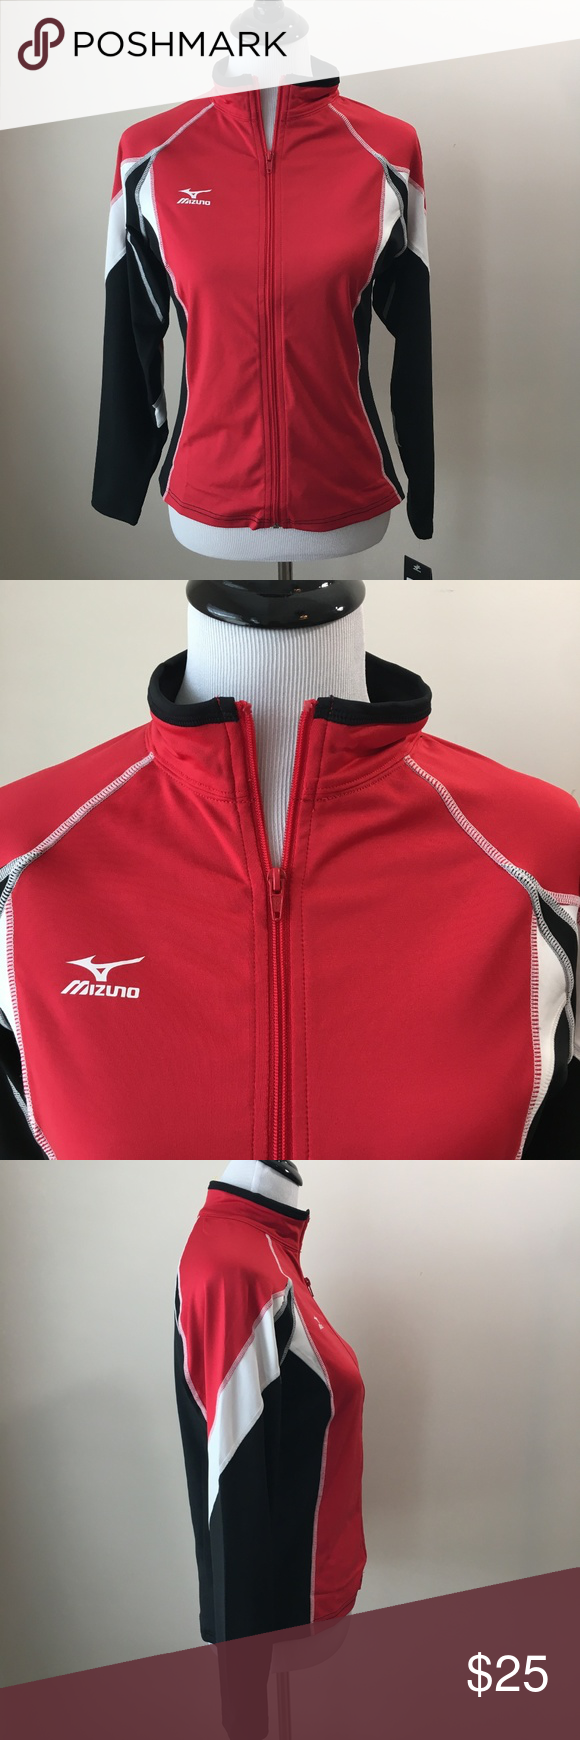 Nwt Mizuno Volleyball Red Black Zip Up Jacket Sz S Black Zip Ups Black And Red Jackets